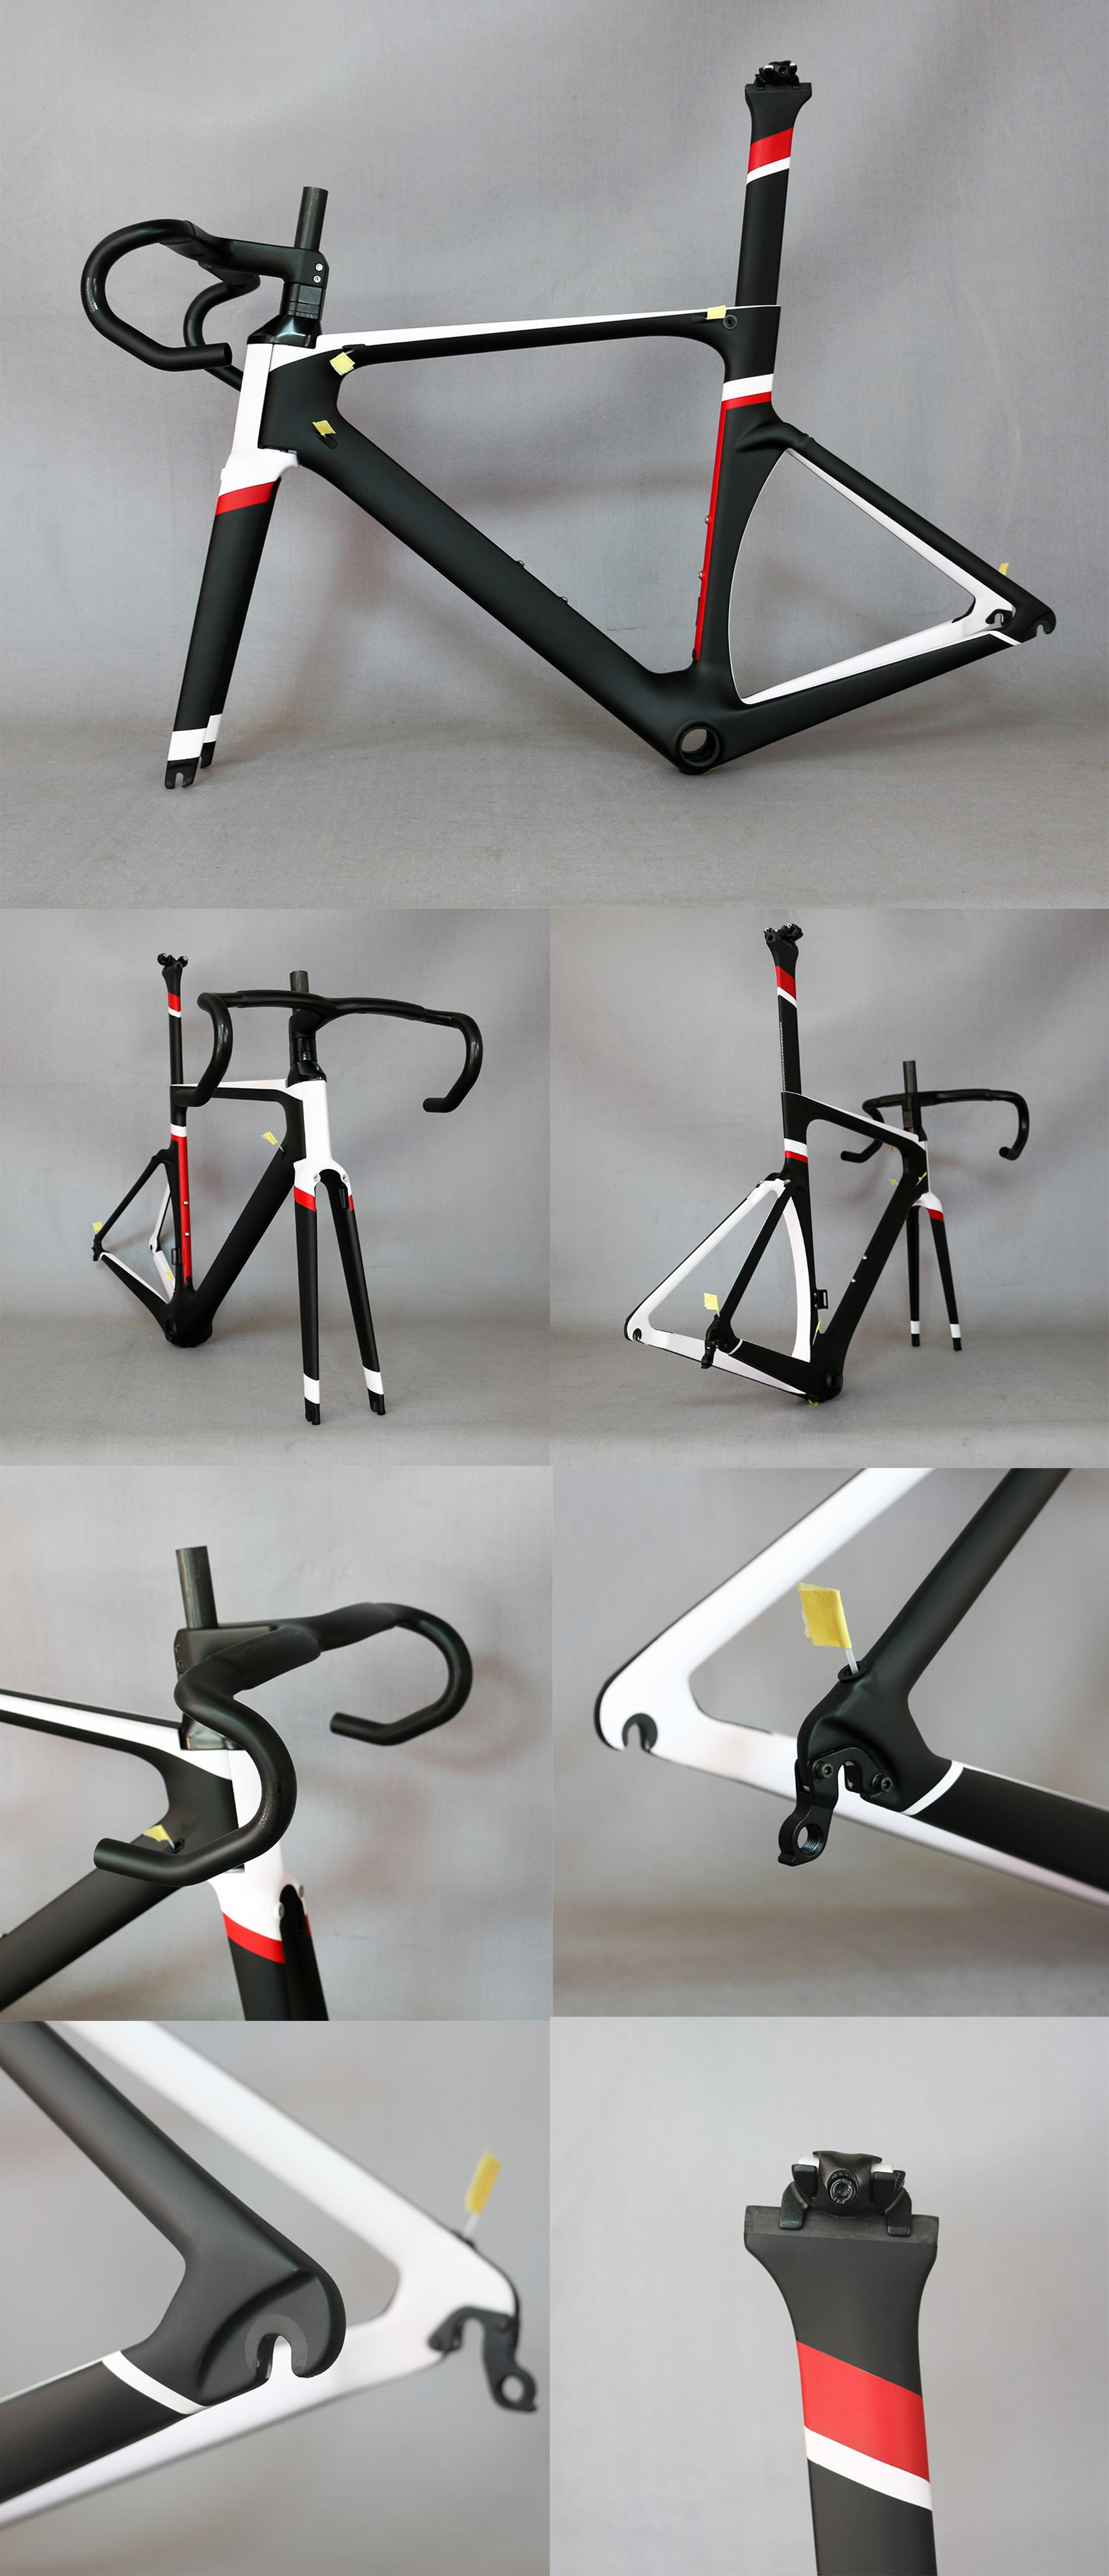 2018 EPS Mould Aero Carbon Road Frame Bicycle Frameset With Integrated Handlebar and Fork